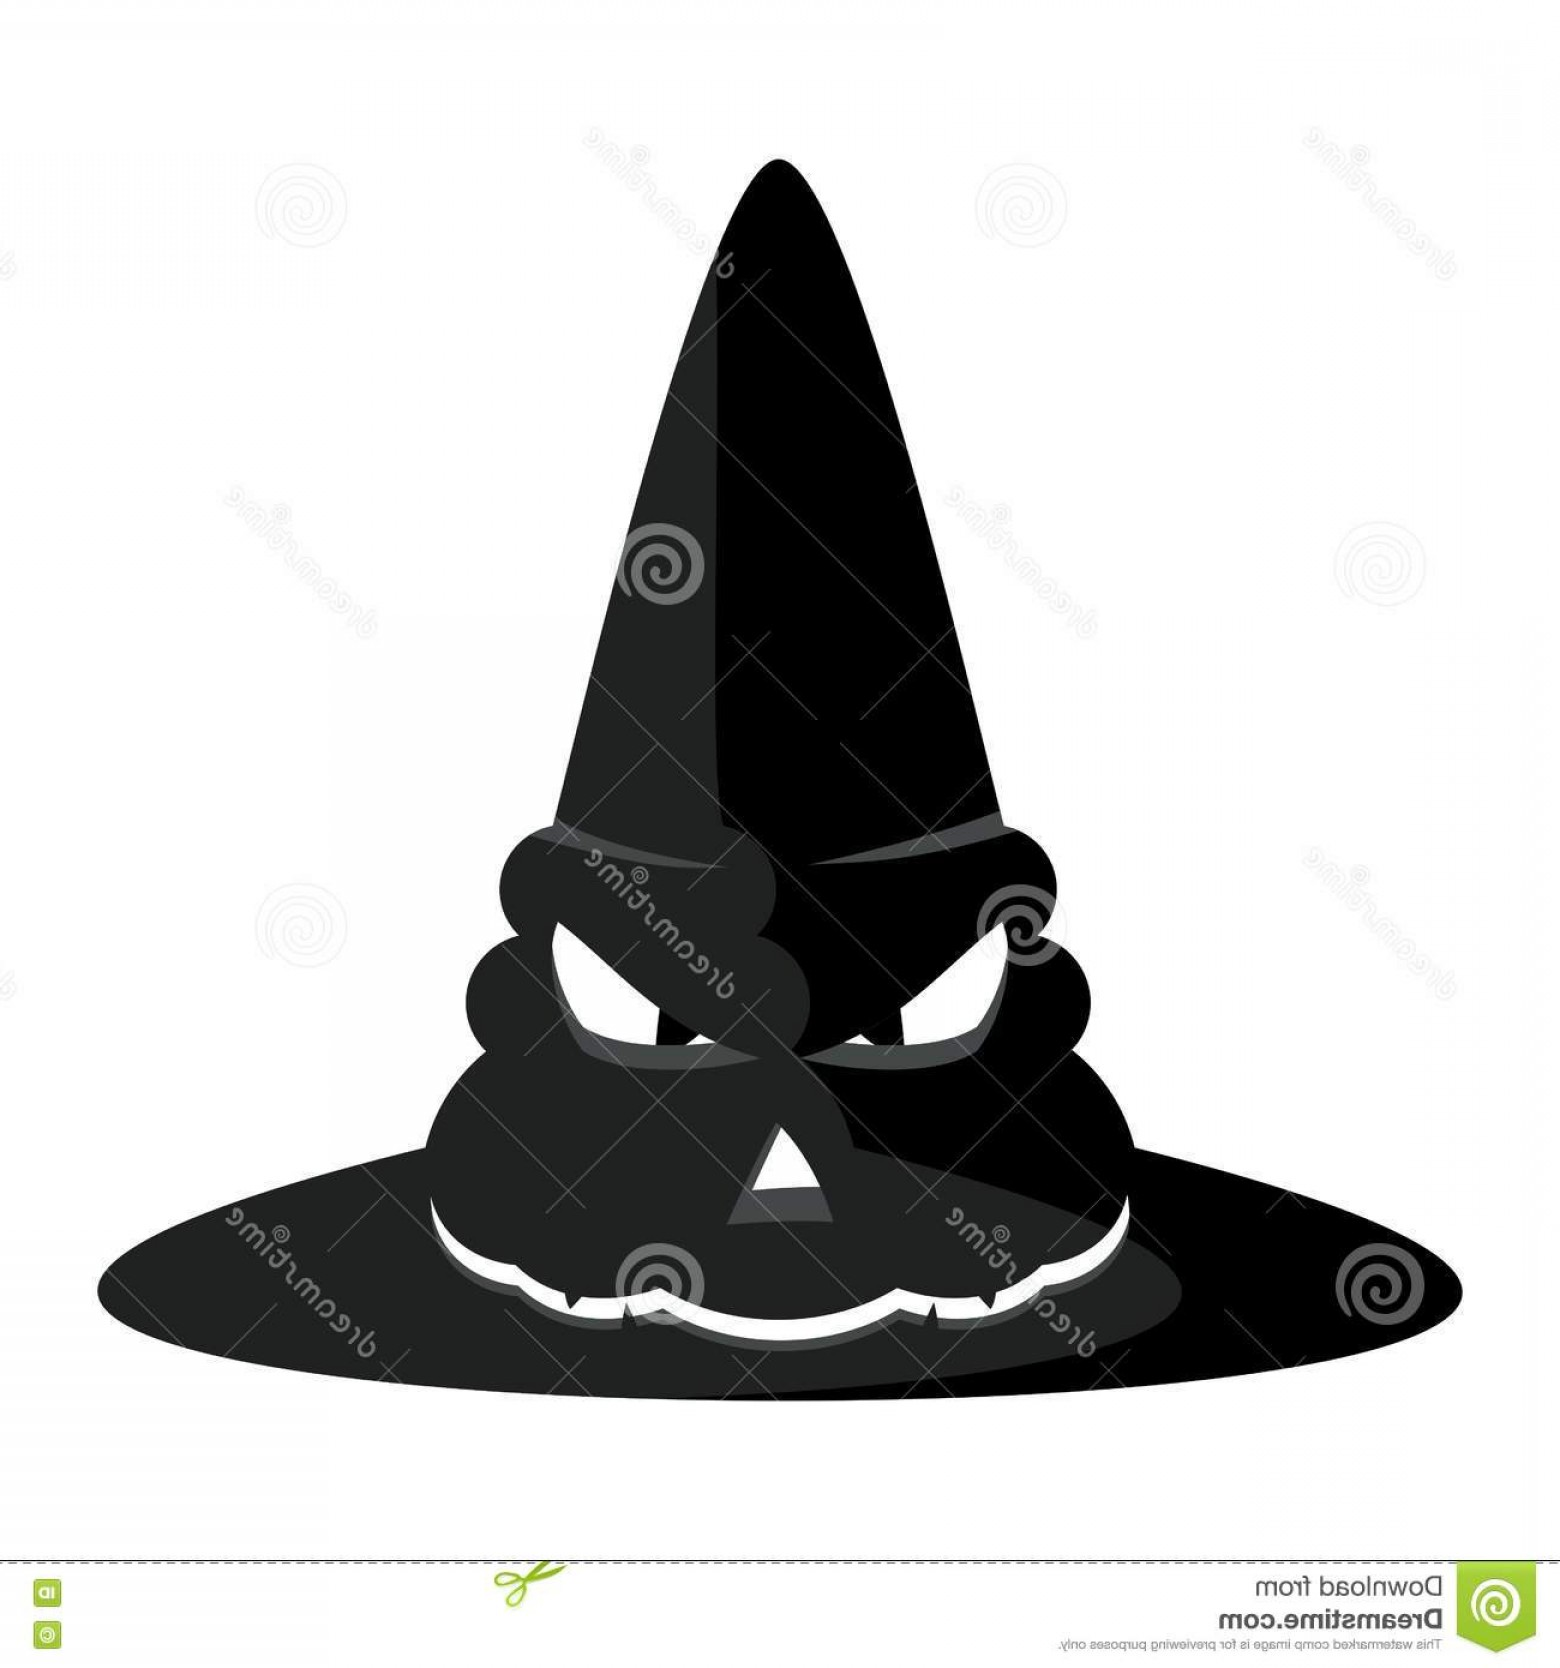 Halloween Witch Hat Vector: Stock Illustration Halloween Witch Hat Vector Black Witches Party Poster Icon Design Elements Advertising Promotion Flat Cartoon Image